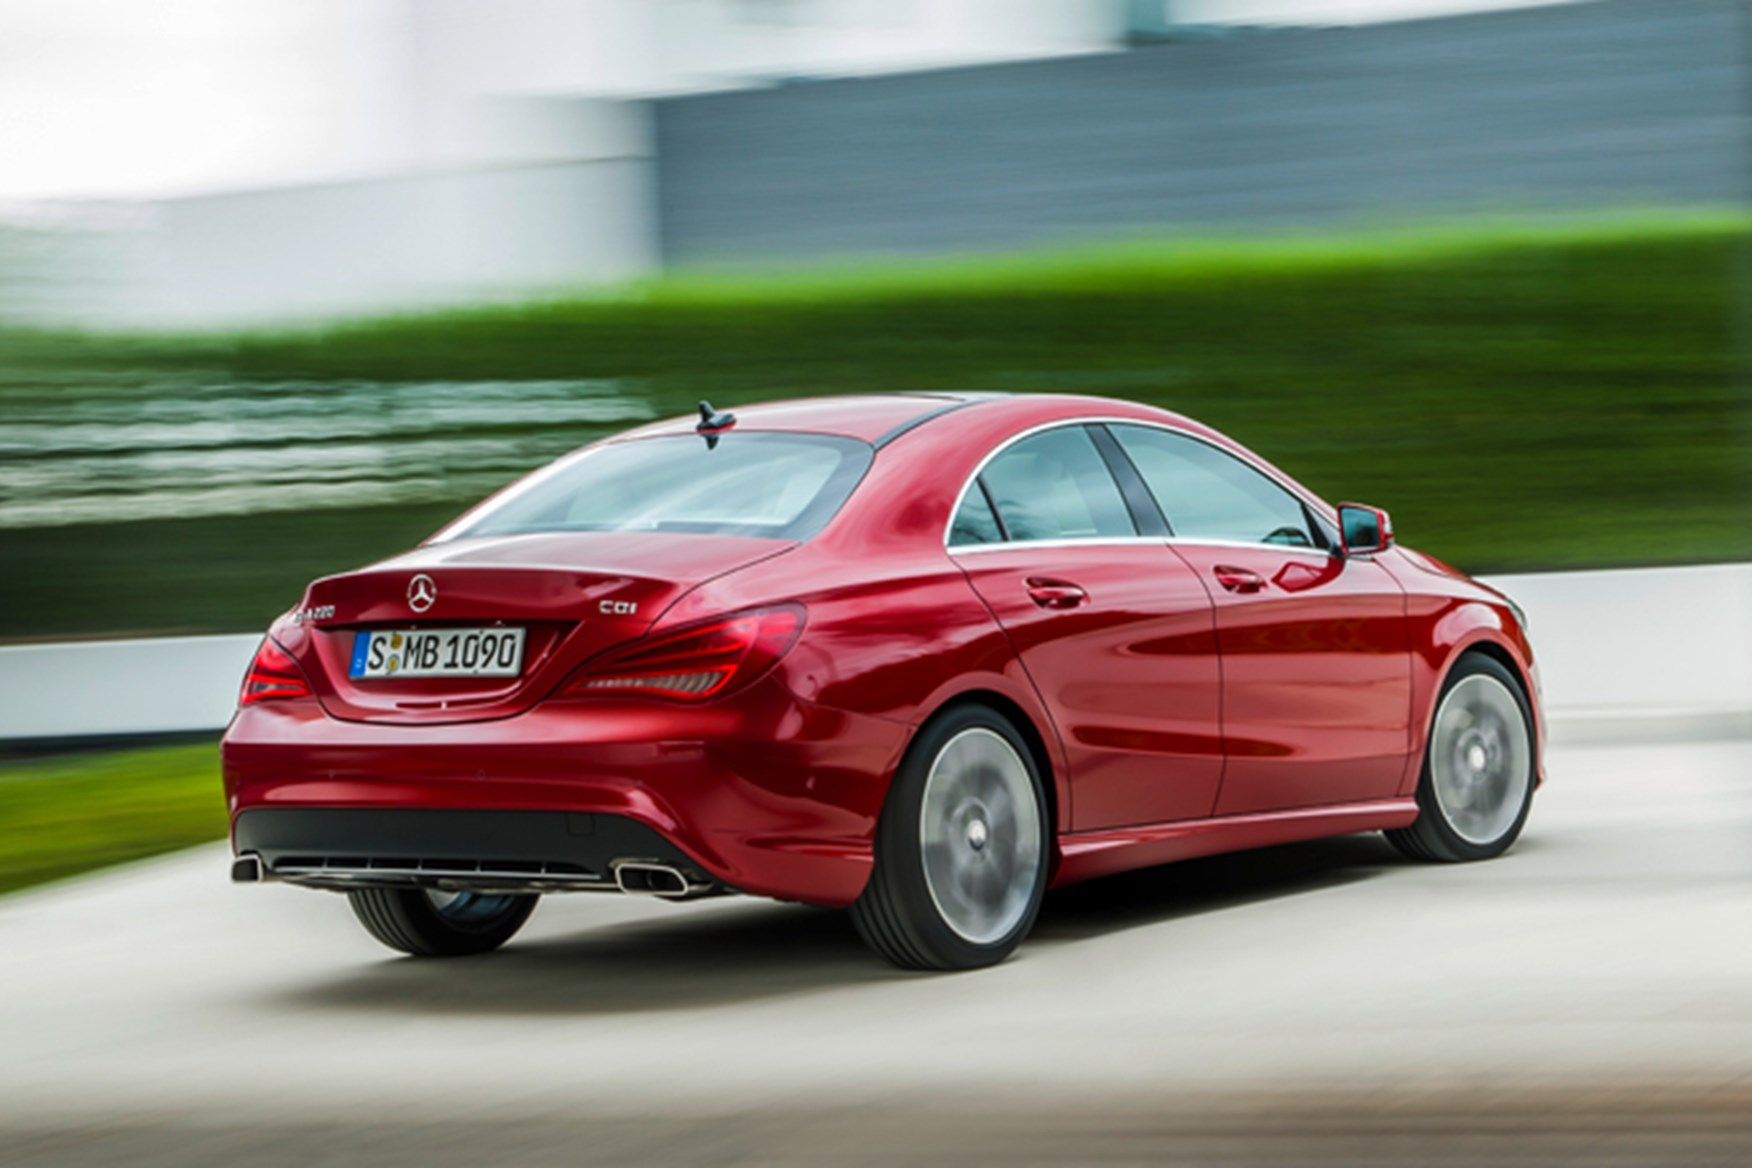 Image gallery mercedes cla 2013 for Mercedes benz cla 2013